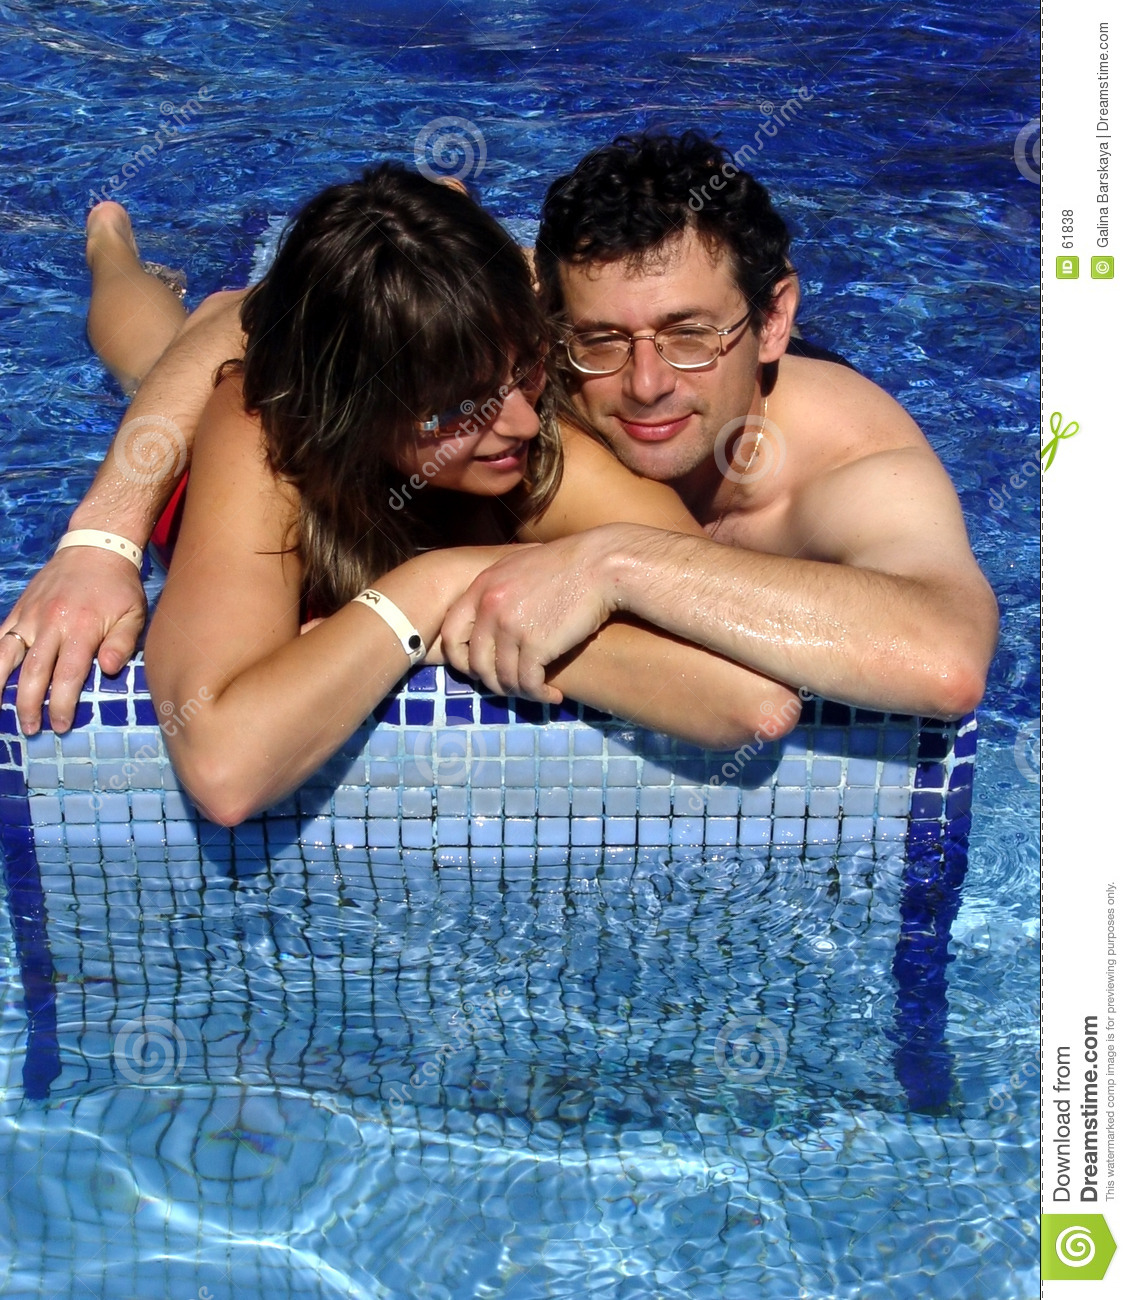 Couple in the pool